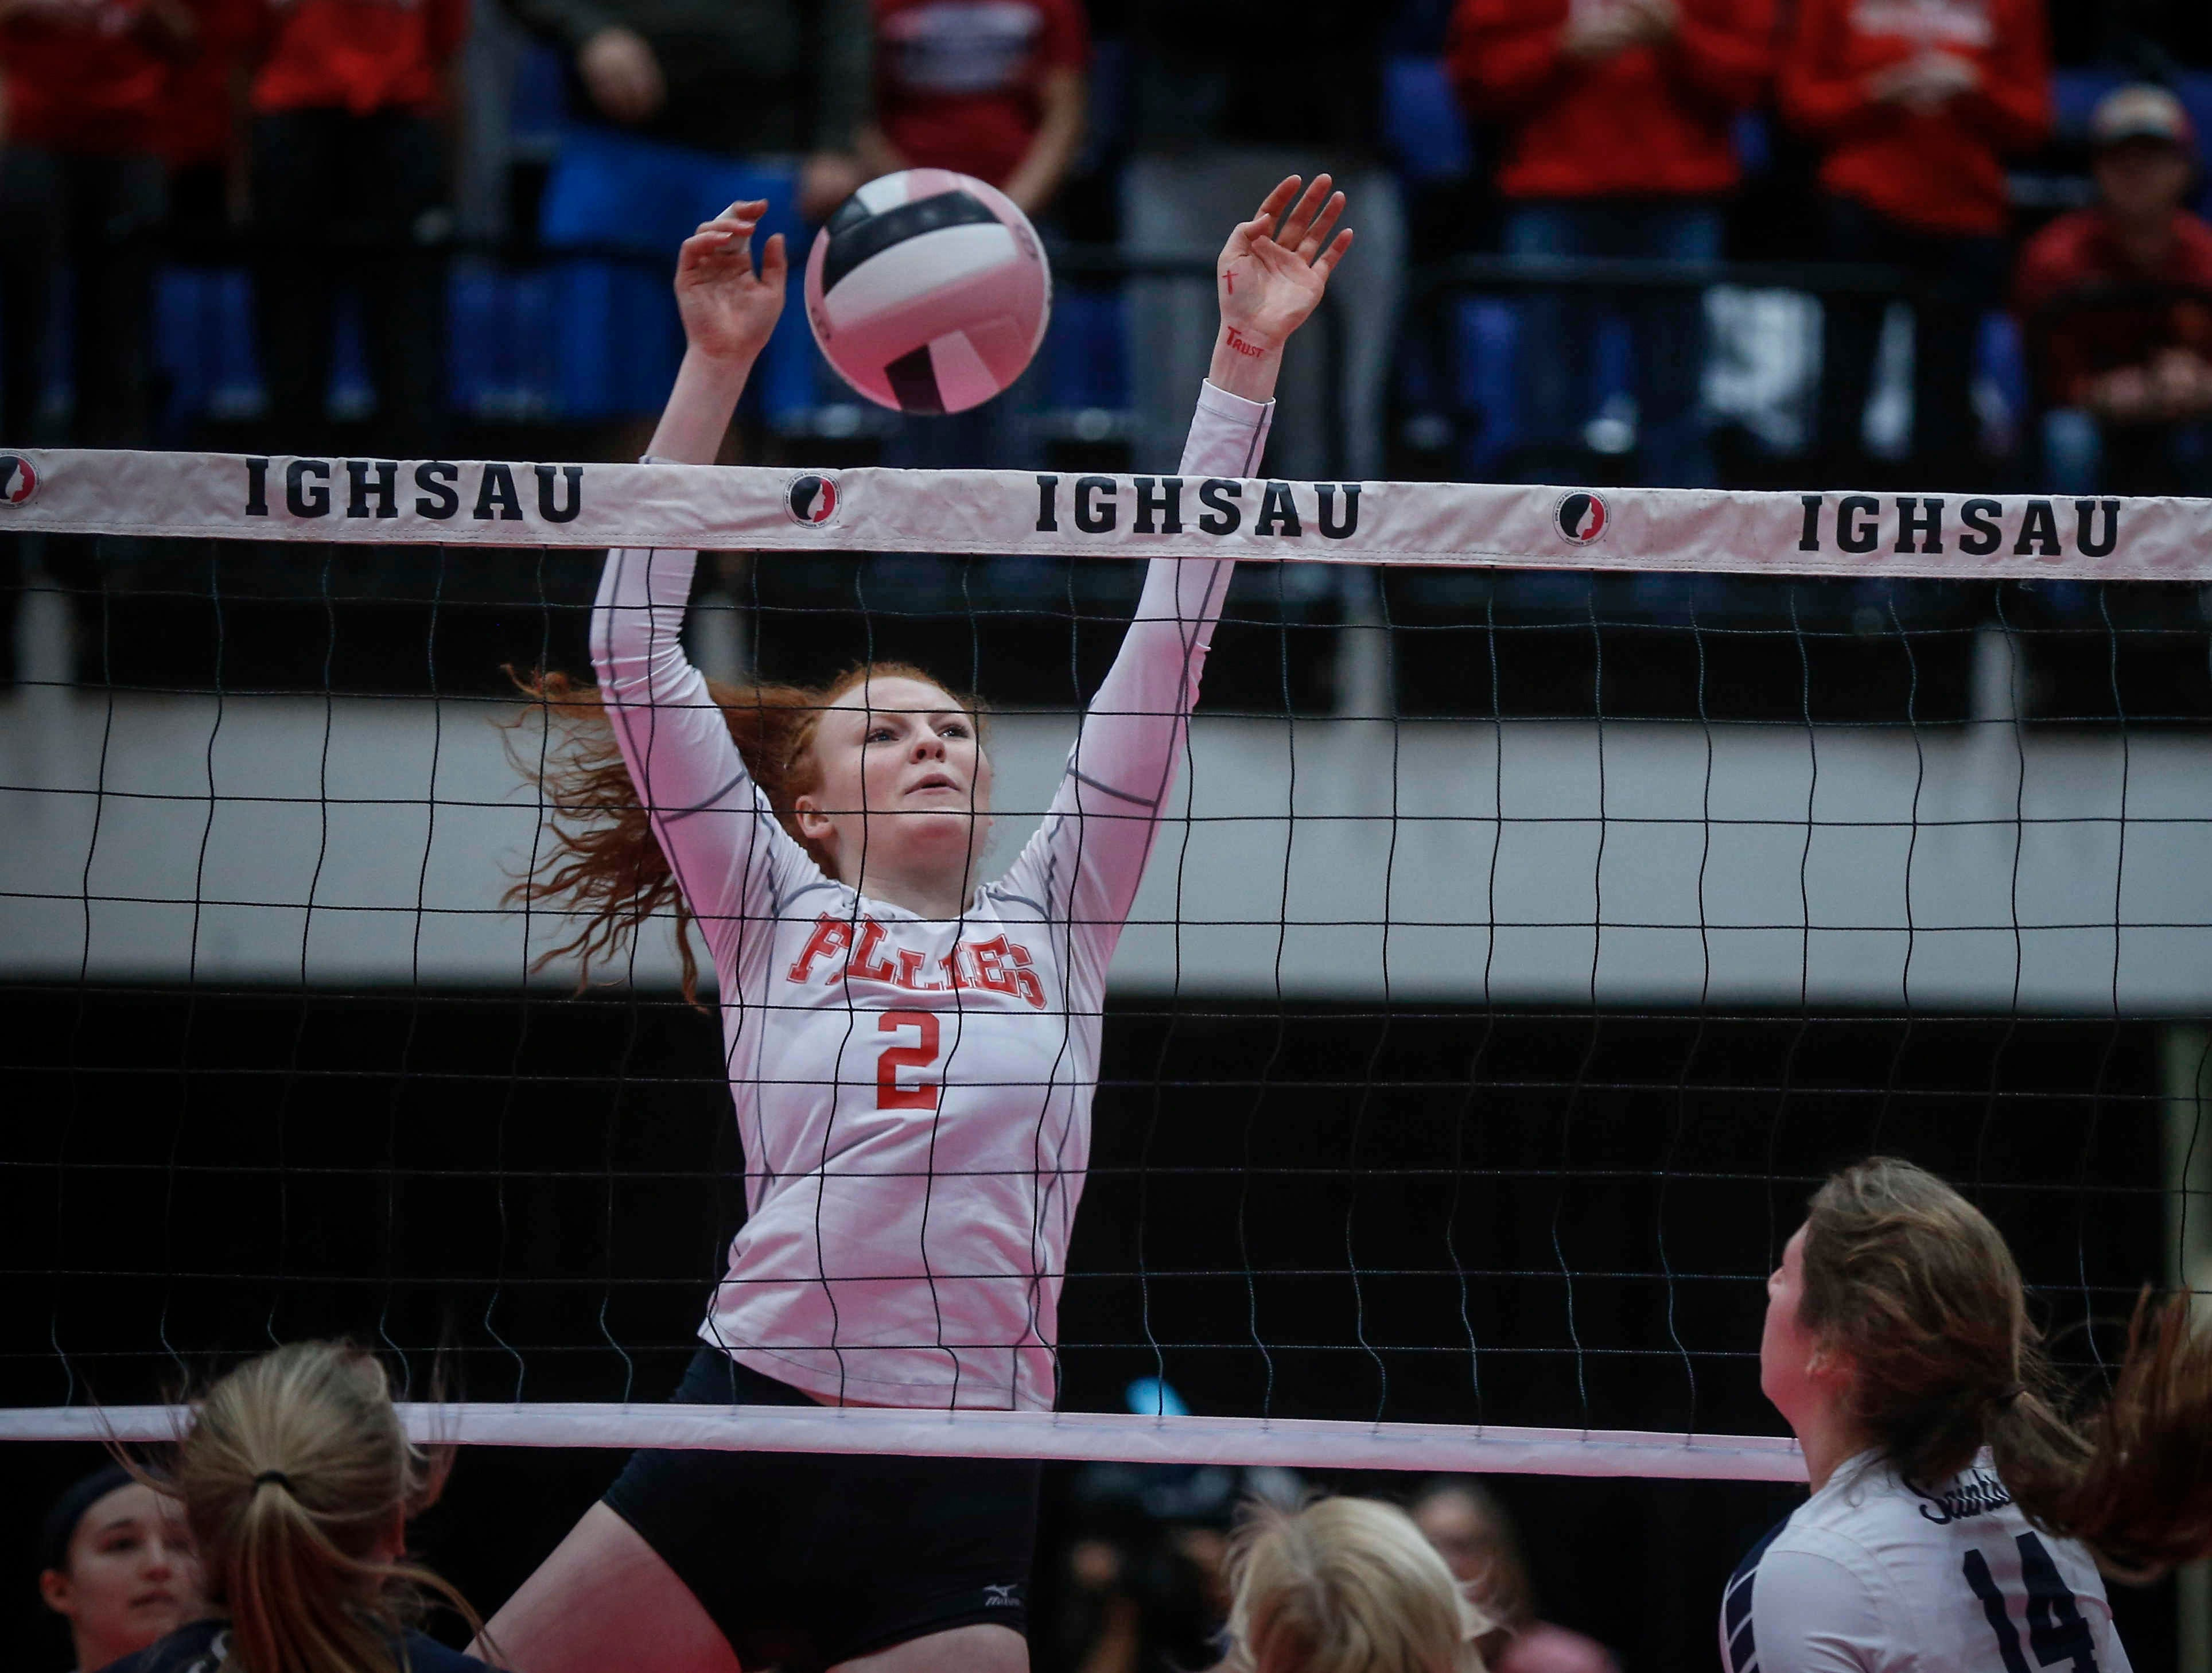 Dallas Center-Grimes senior Anny Greiman stops the ball at the net in Class 4A against Cedar Rapids Xavier during the 2018 Iowa High School state volleyball tournament on Thursday, Nov. 8, 2018, in Cedar Rapids.